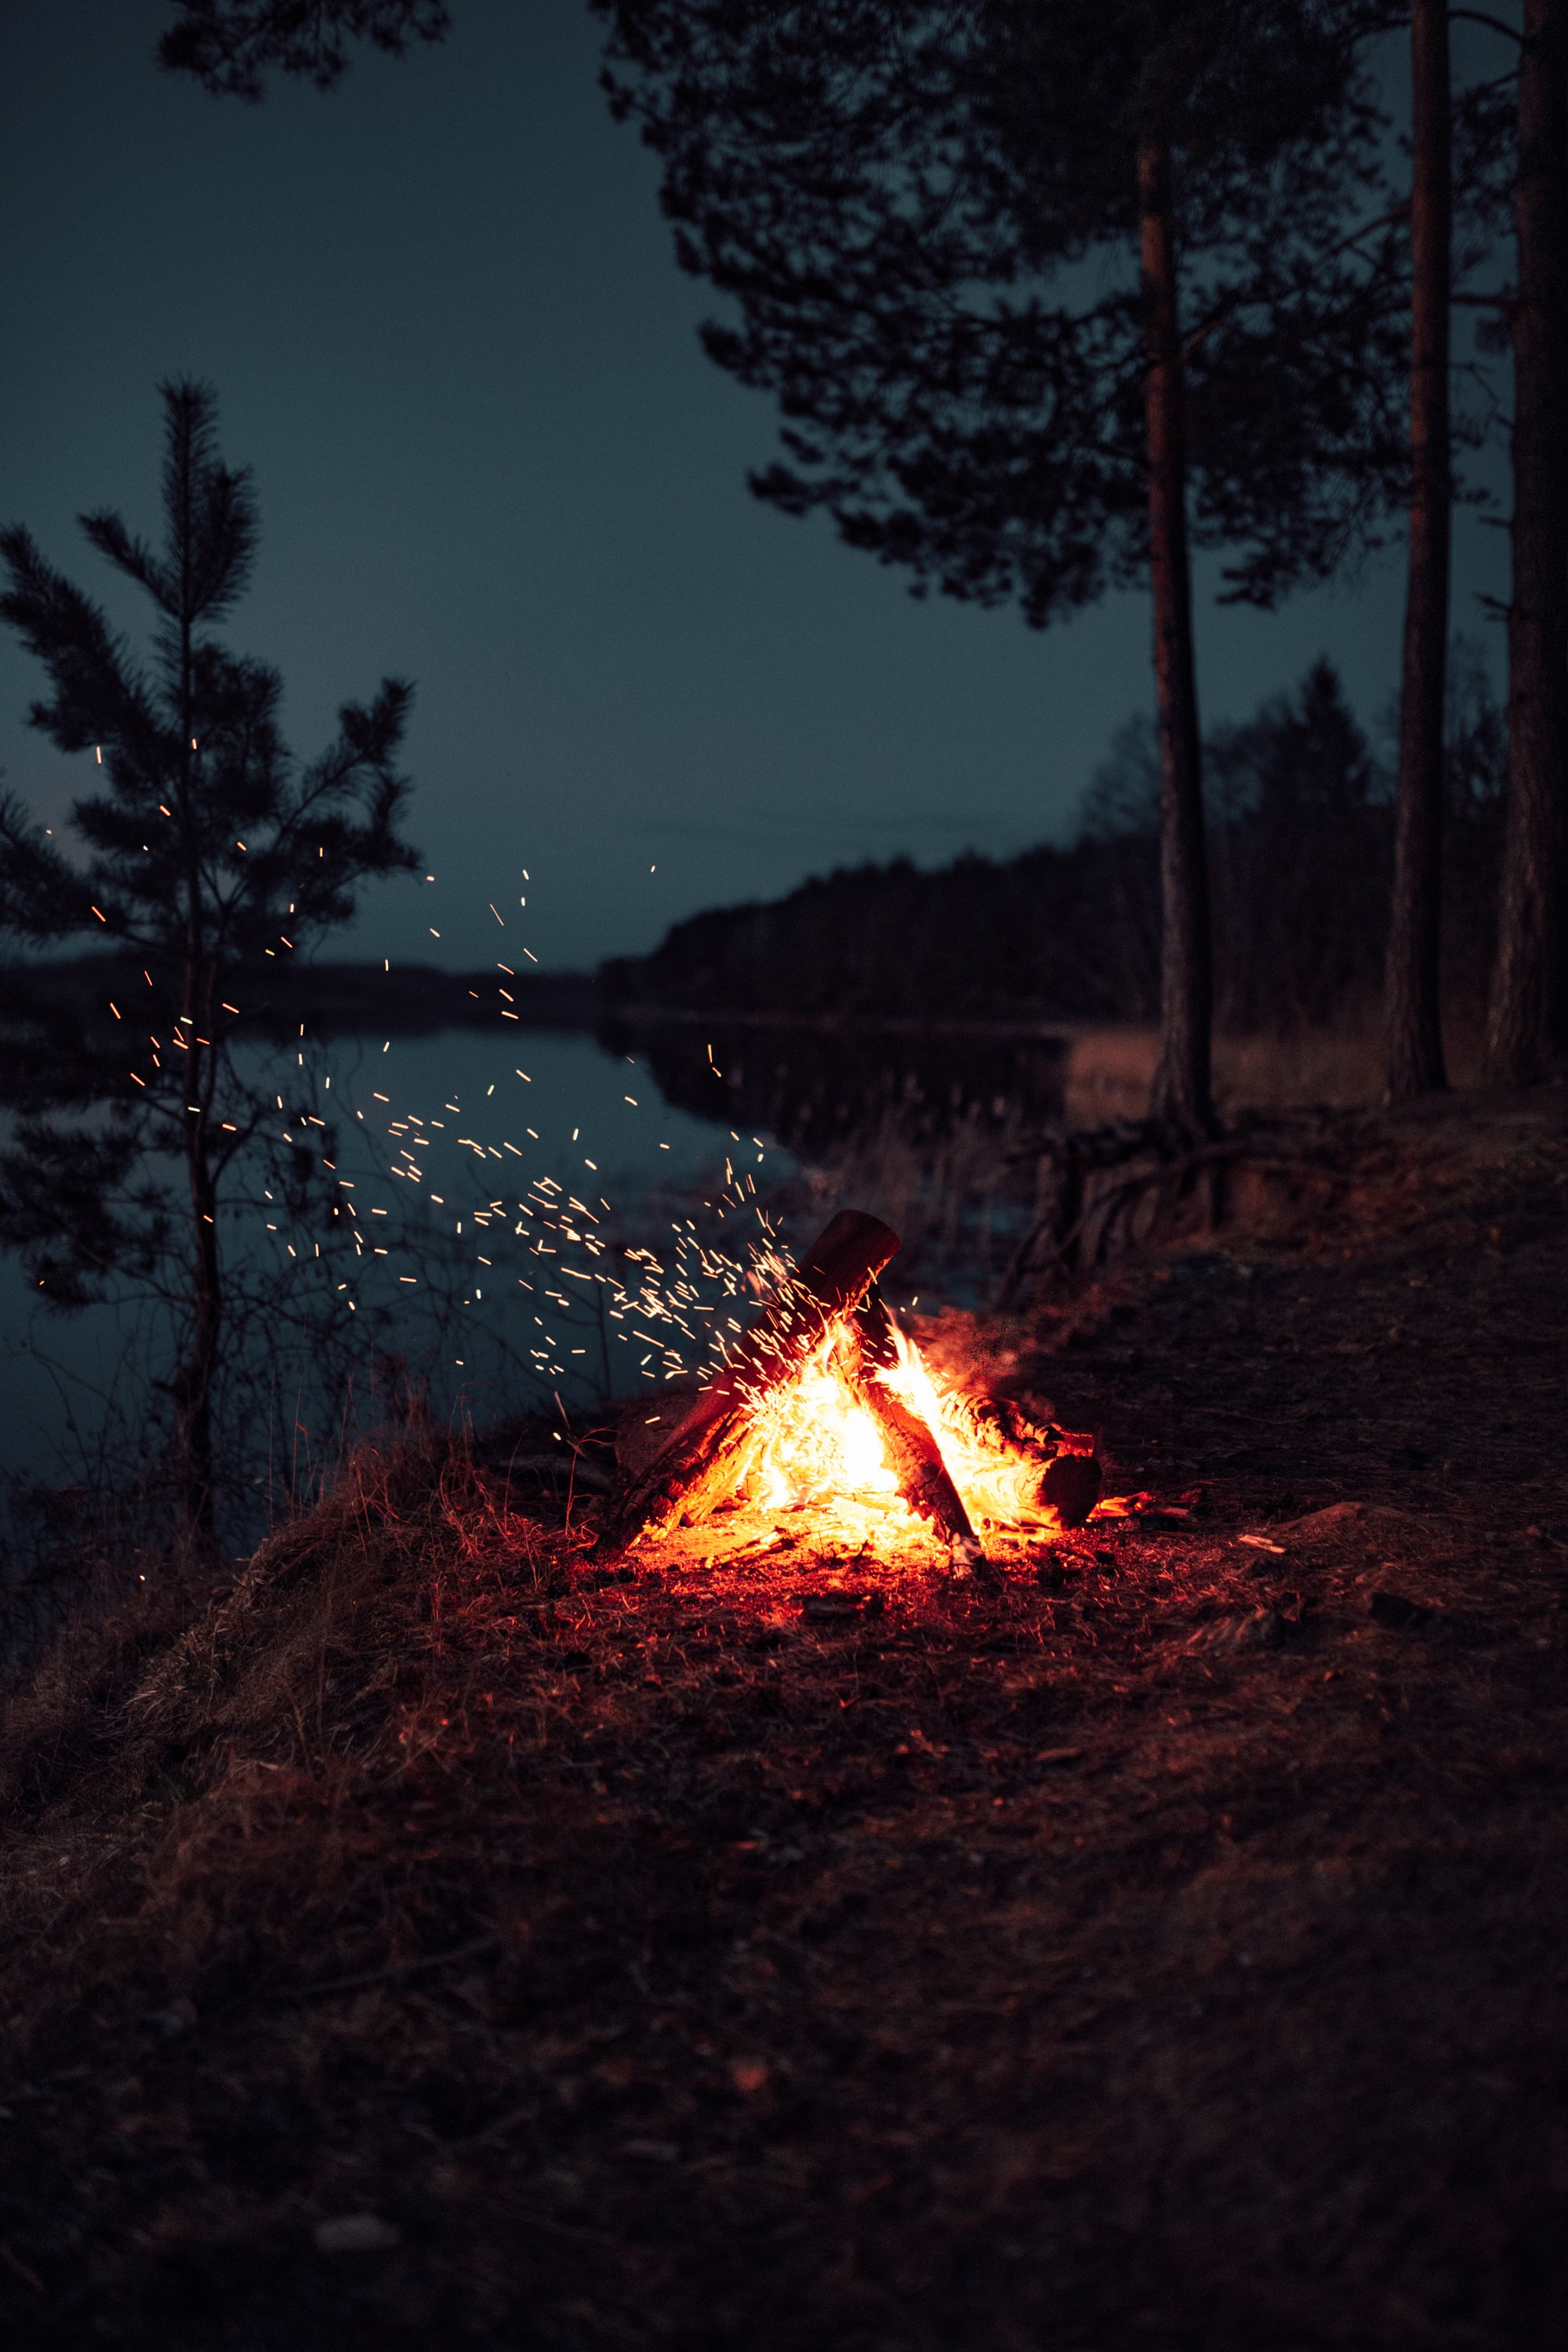 131890 Screensavers and Wallpapers Bonfire for phone. Download Dark, Bonfire, Night, Sparks, Camping, Campsite pictures for free